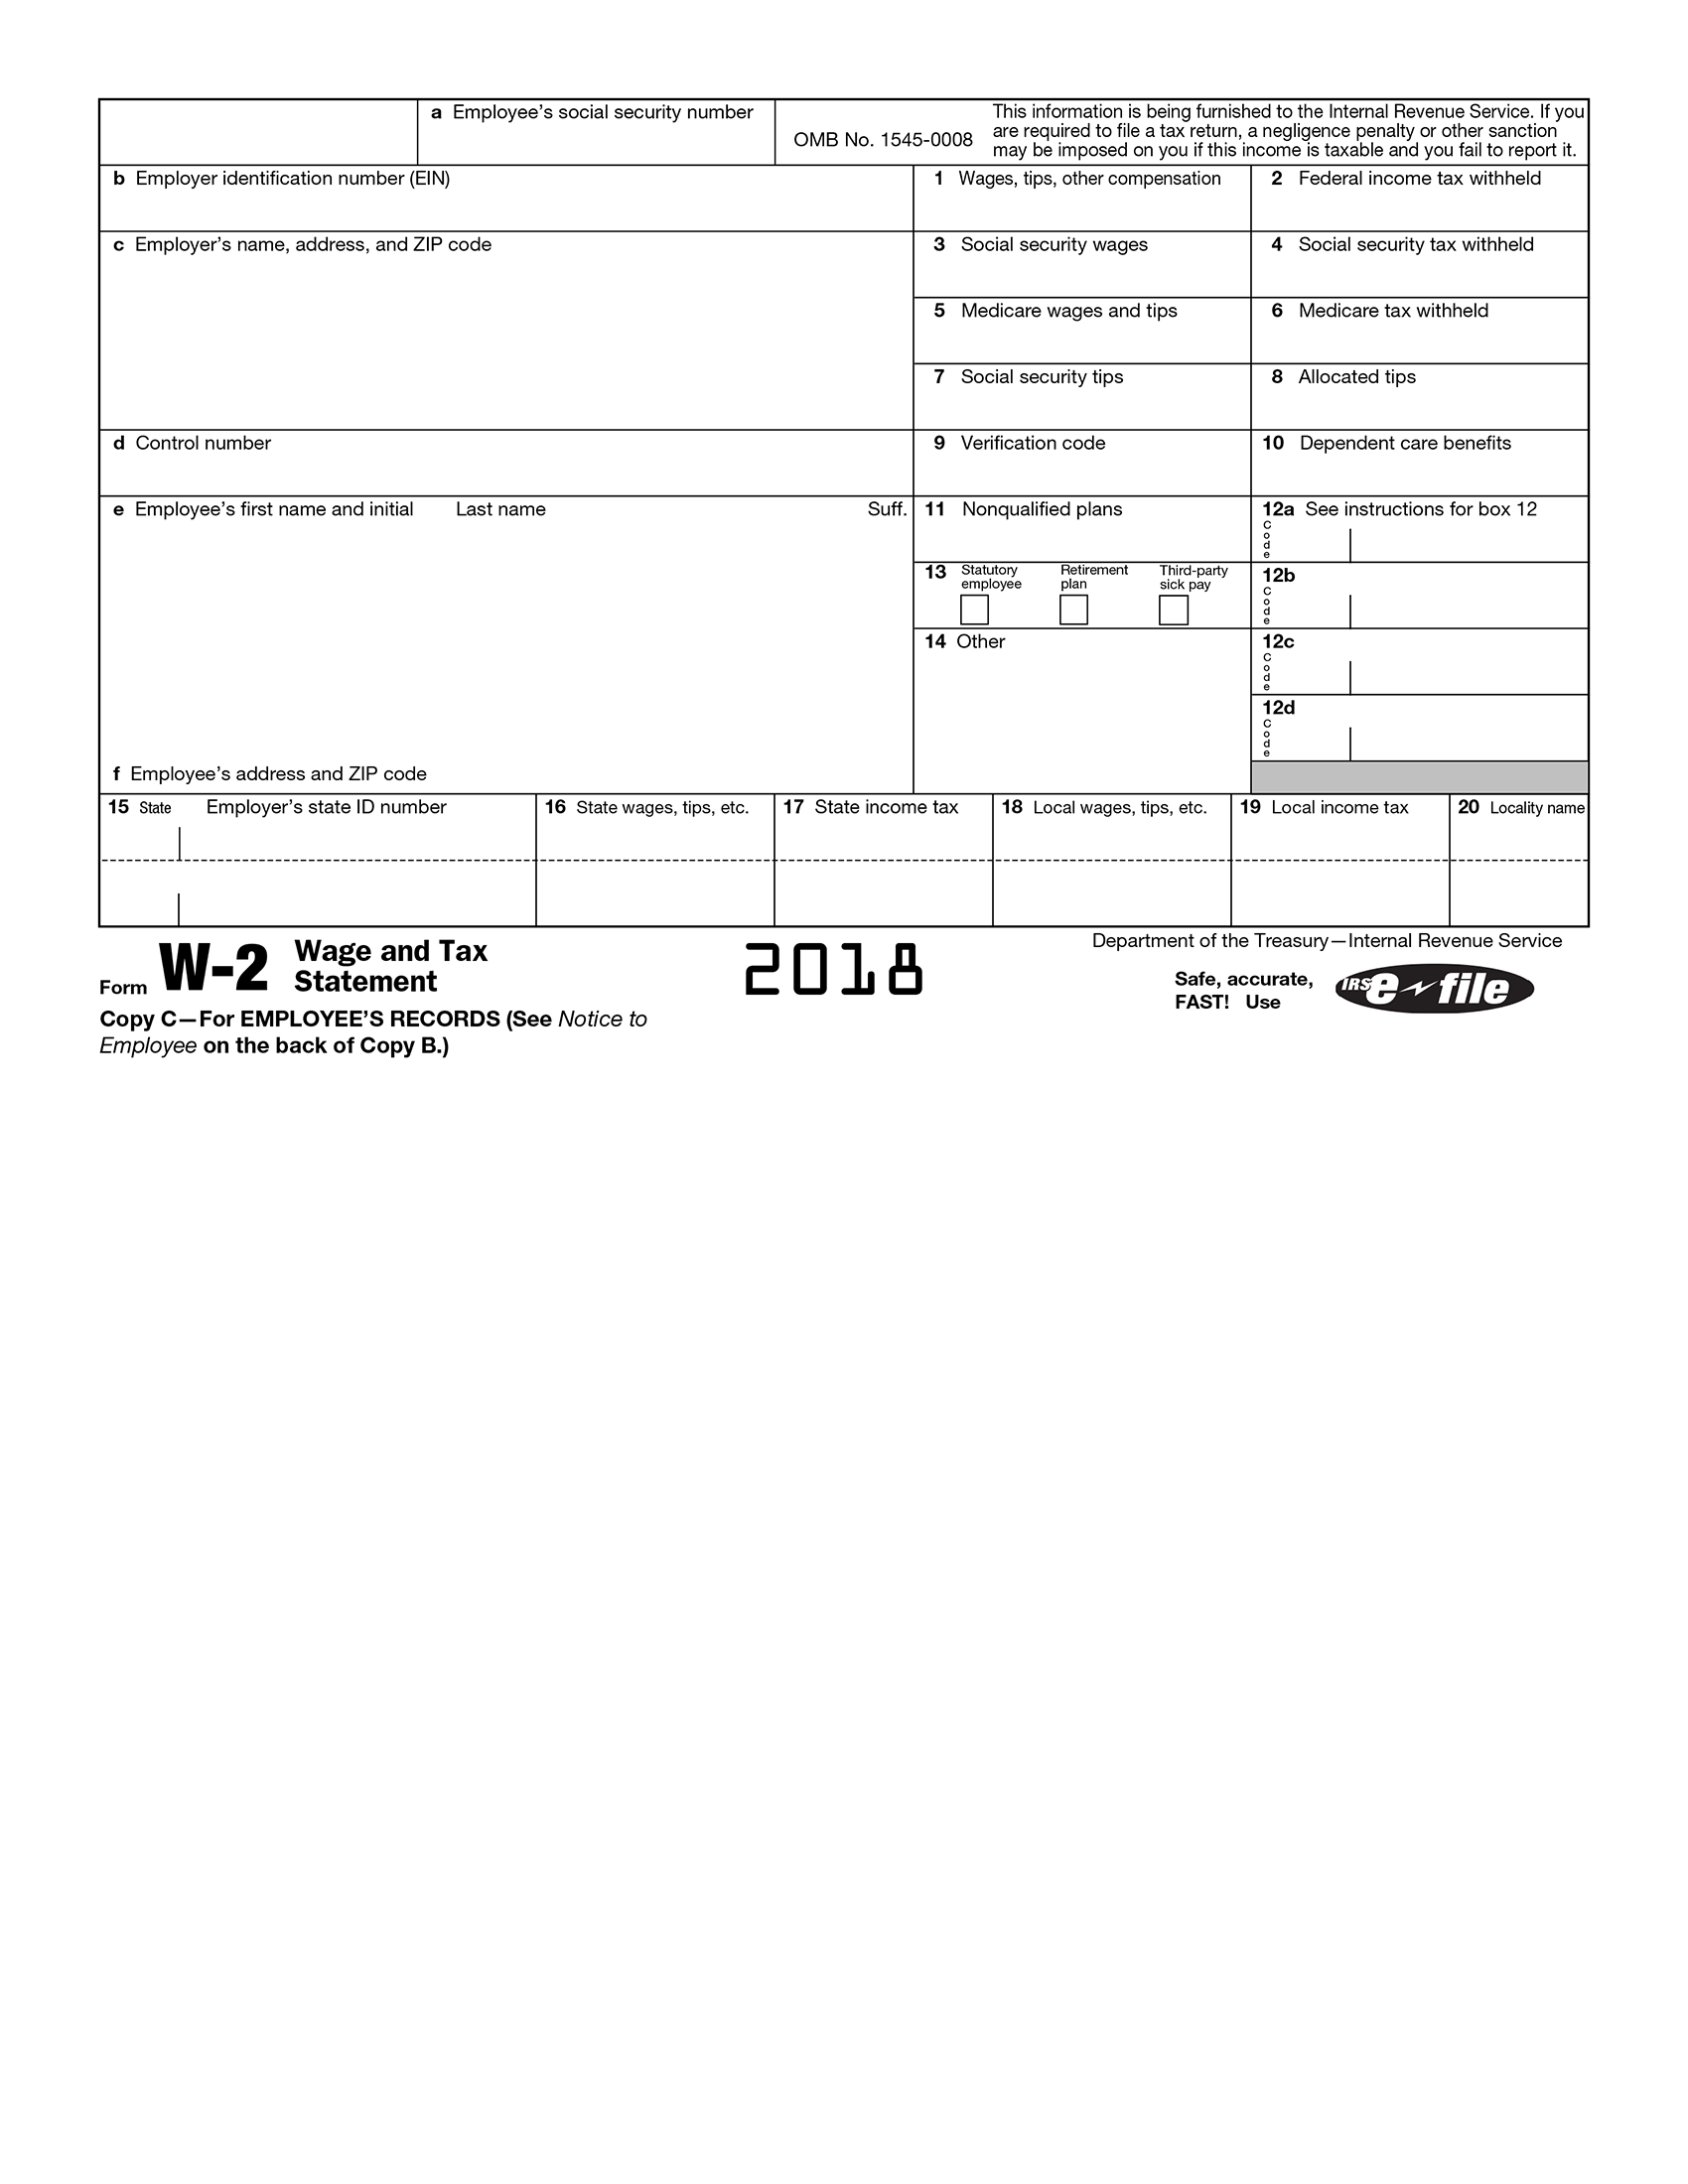 Fillabletaxforms Create A Free W2 Form W2 Forms Tax Forms Credit Card Services